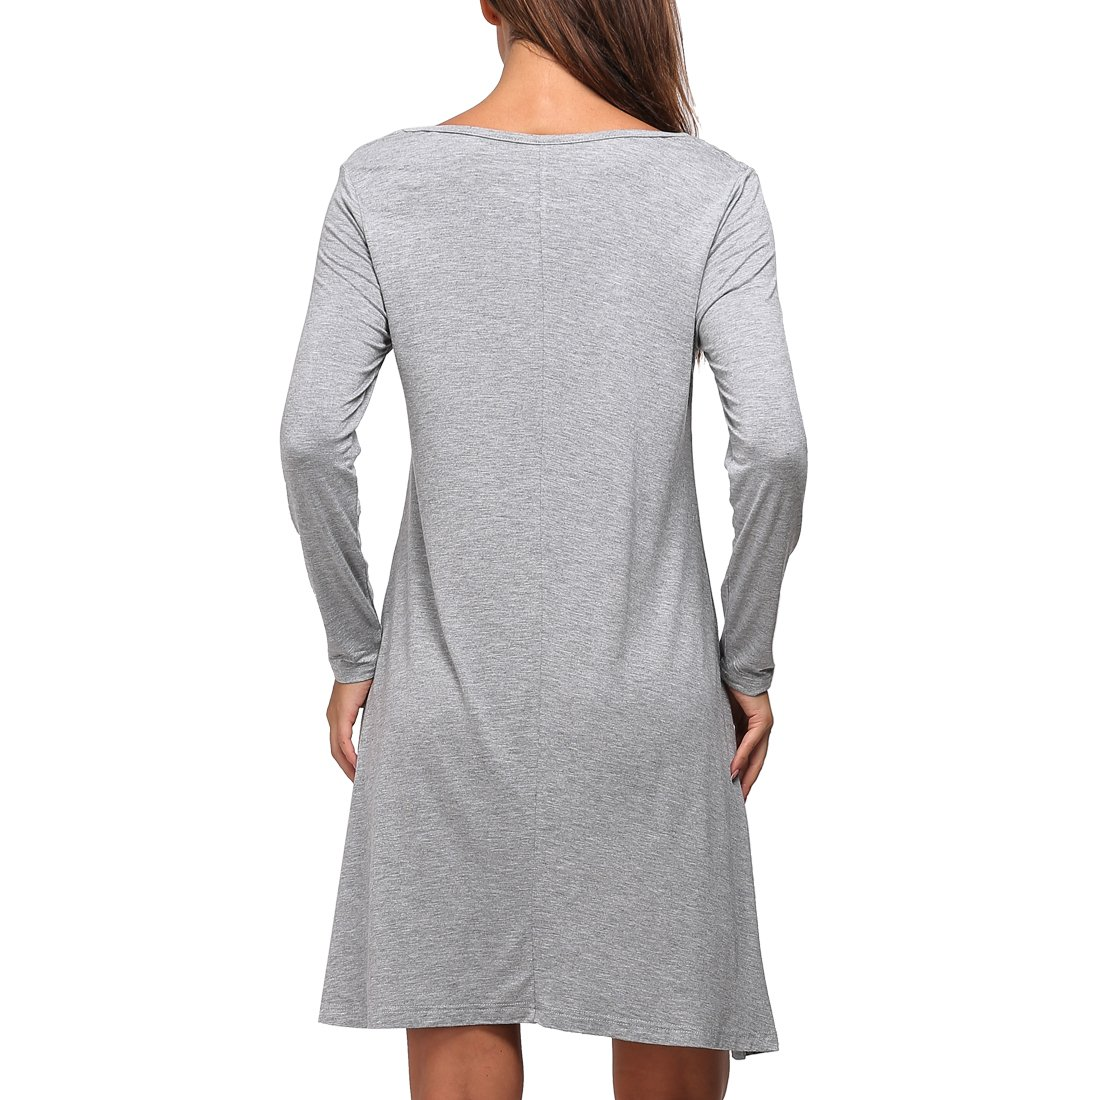 c9d26d96b280 ShiZiBan Plus Size Women's Casual Swing Loose Fit Comfy Flattering Tunic  Tops.Flare Long Sleeve T Shirt Dress at Amazon Women's Clothing store: